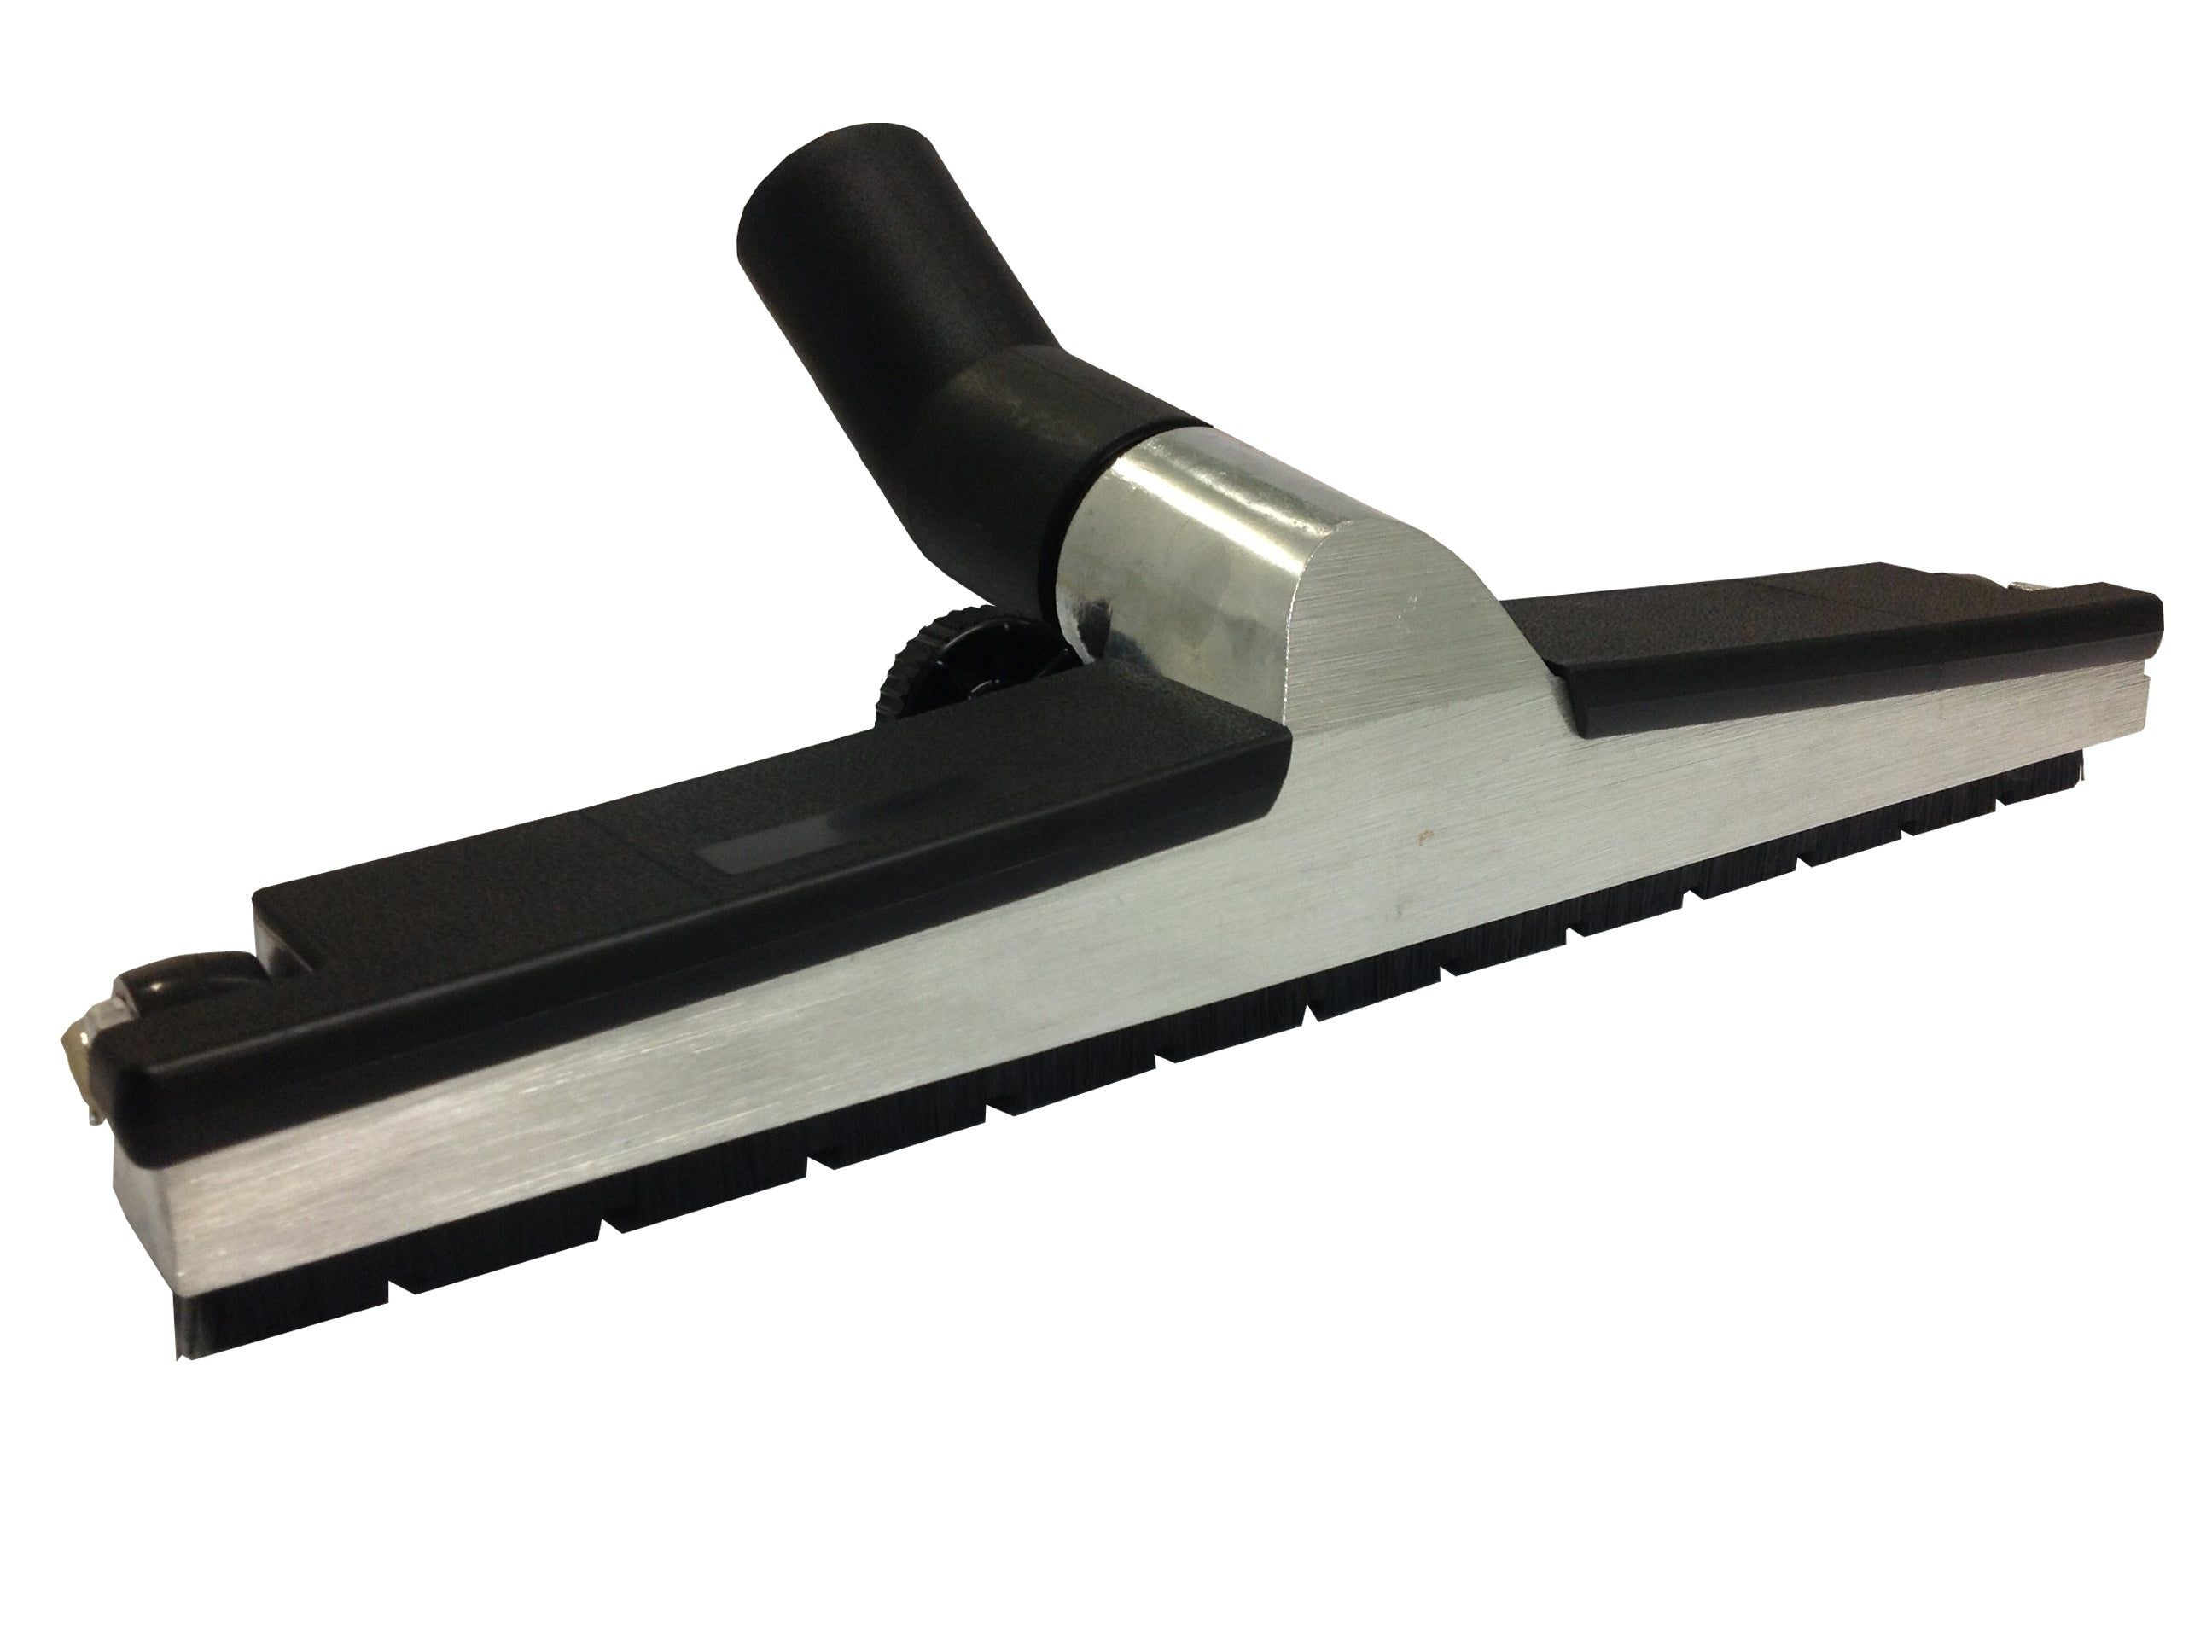 WESSEL WERK GRD450 BRUSH FLOOR TOOL 32MM X 450MM WIDE - ALUMINIUM/BLACK